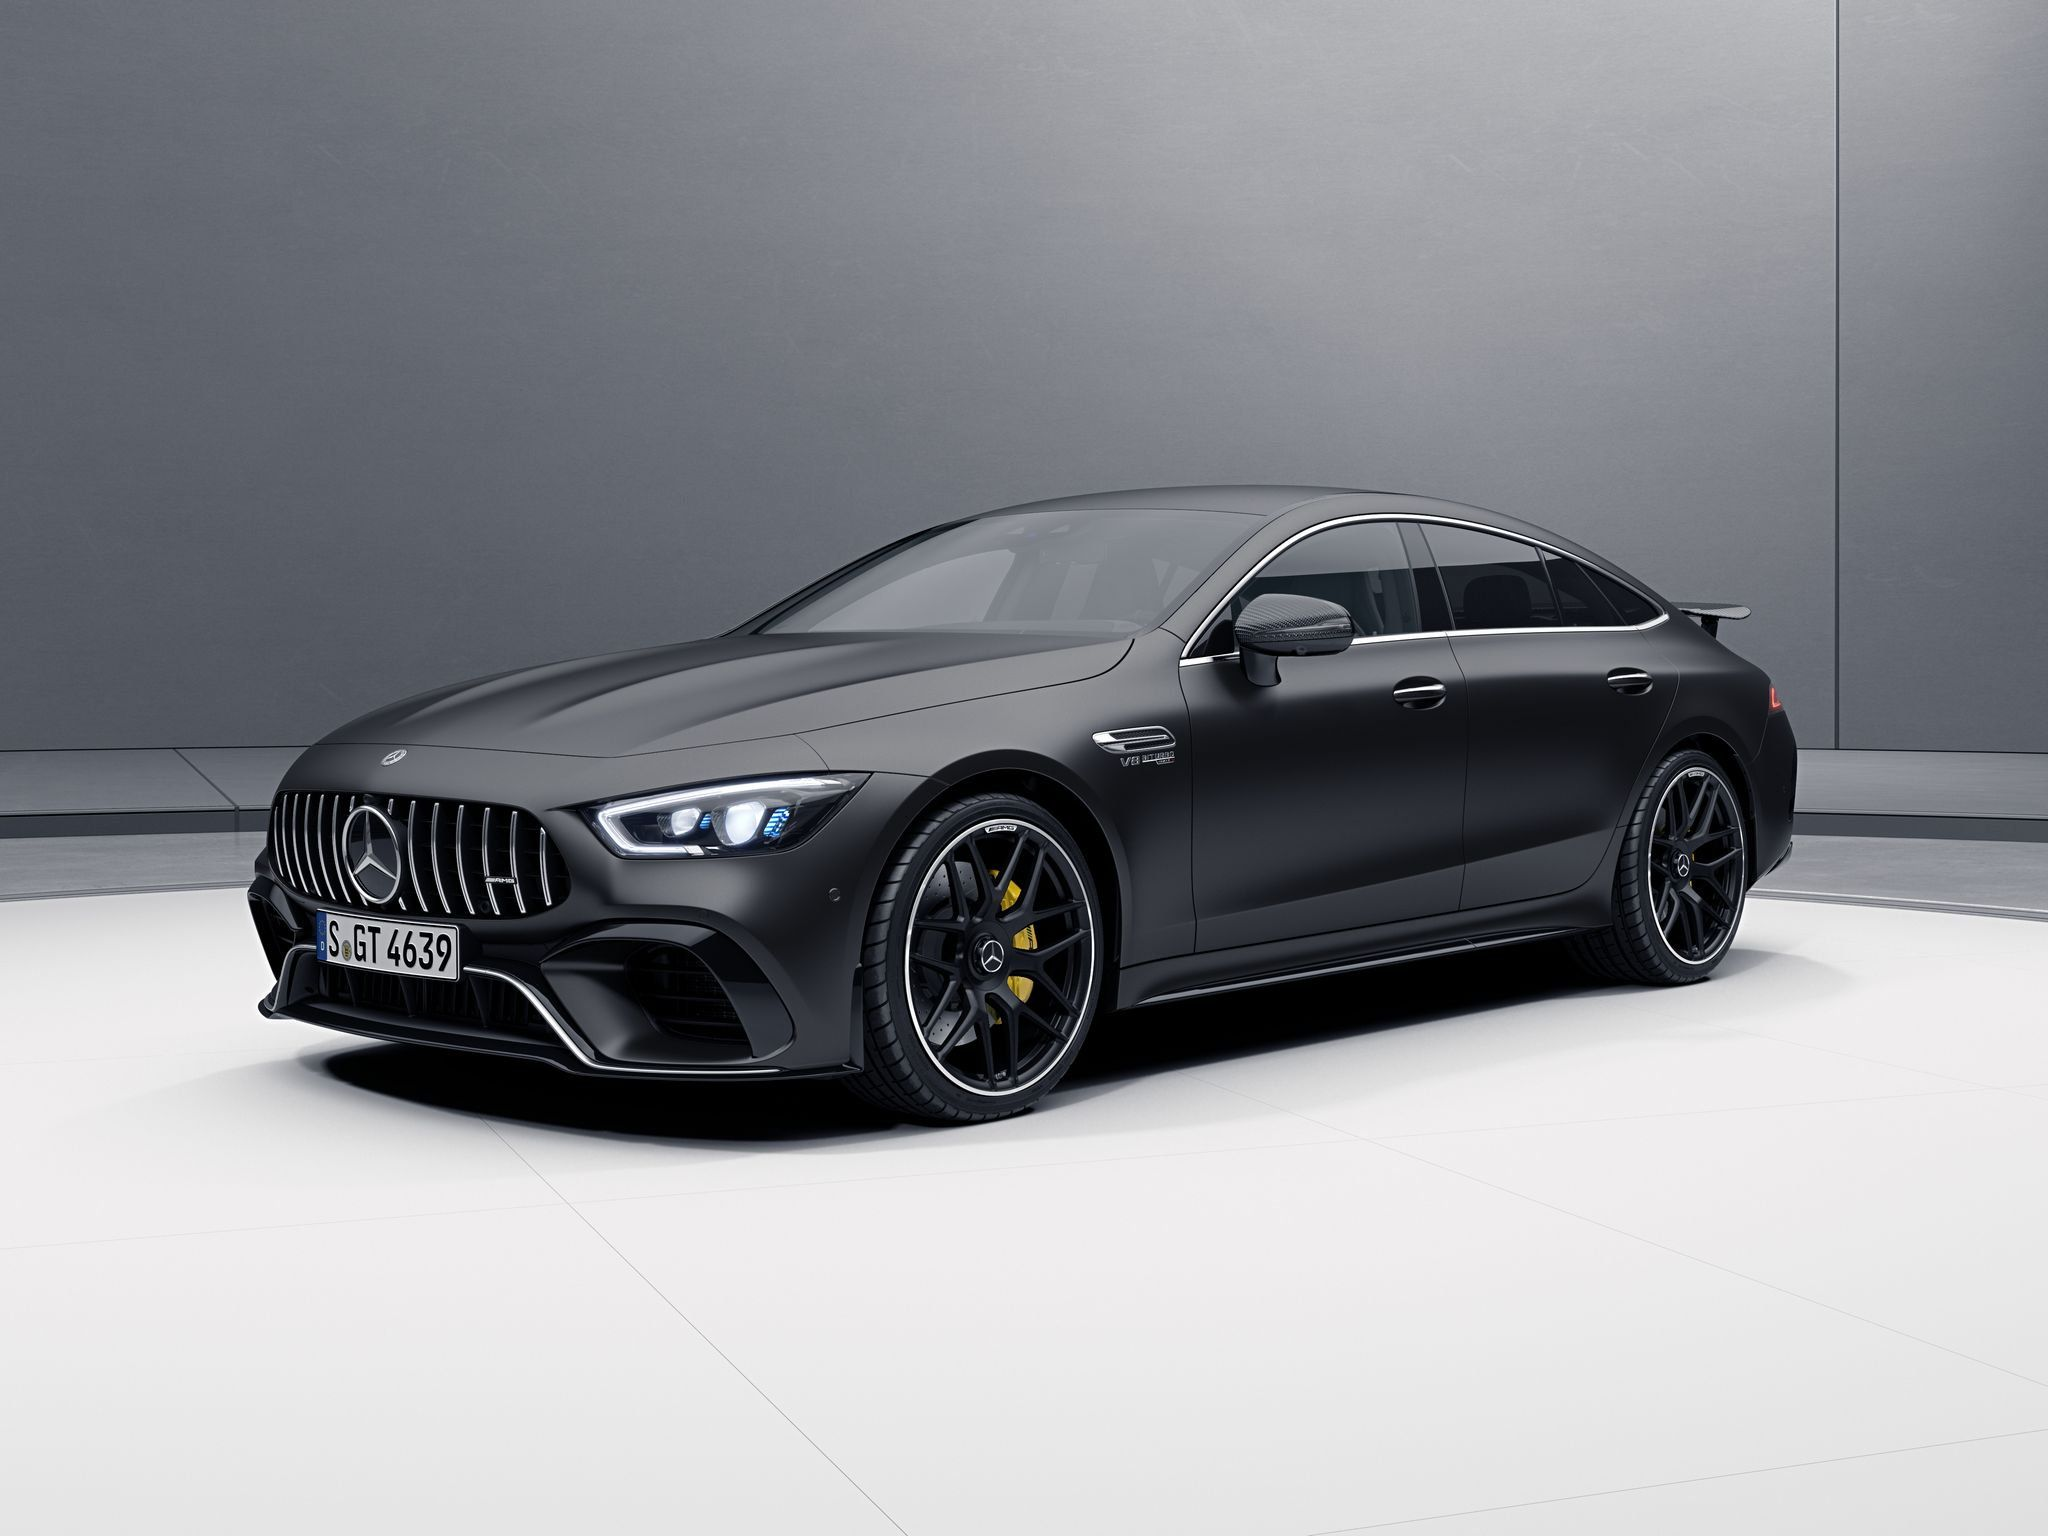 Give Your Mercedes Amg Gt 4 Door Added Presence With This Aero Kit Carscoops Mercedes Amg Black Mercedes Benz Mercedes Benz Amg